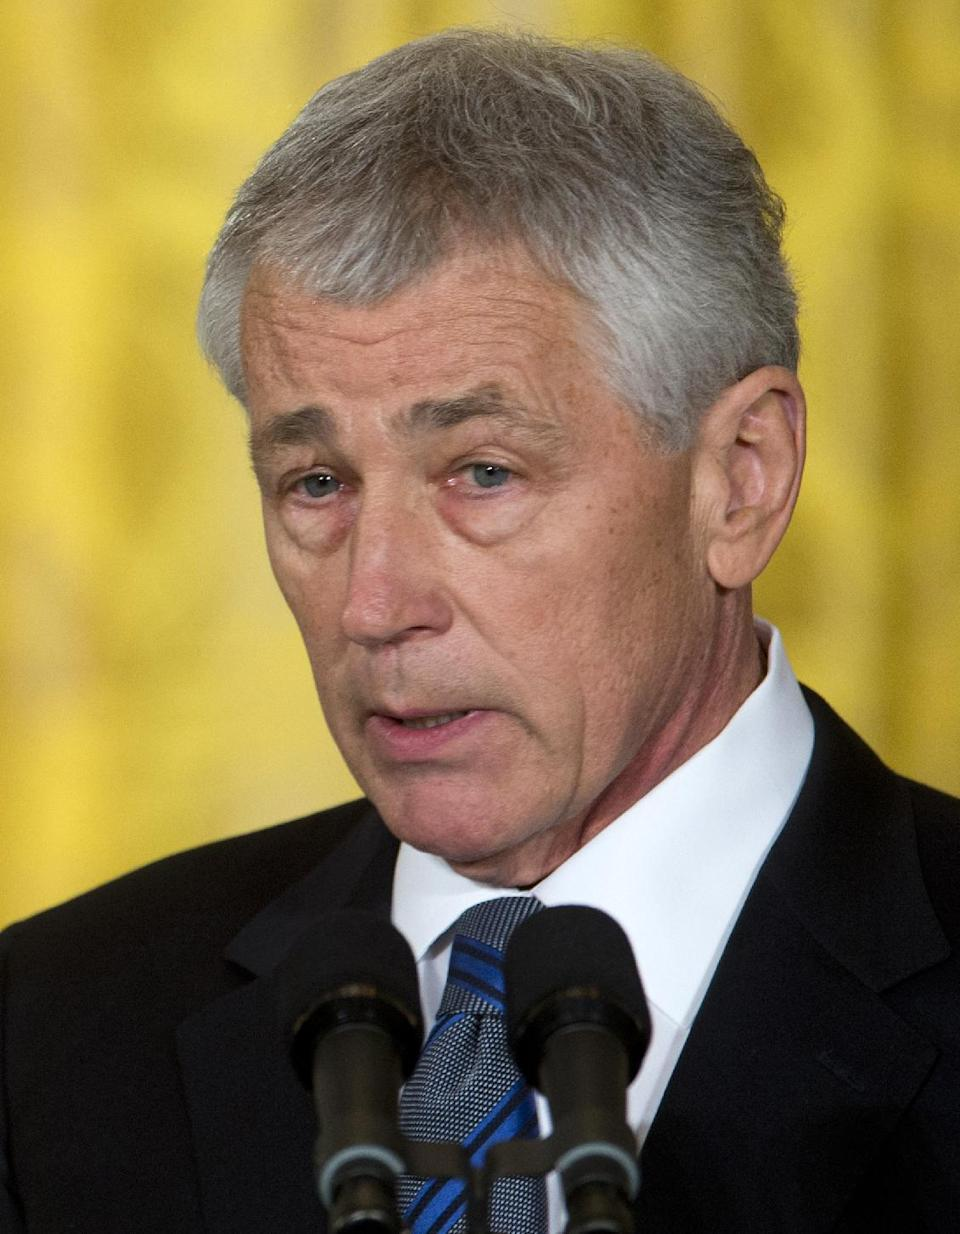 Former Nebraska Sen. Chuck Hagel, president Barack Obama's choice for defense secretary, speaks in the East Room of the White House in Washington, Monday, Jan. 7, 2013, where the president made the announcement. (AP Photo/Carolyn Kaster)